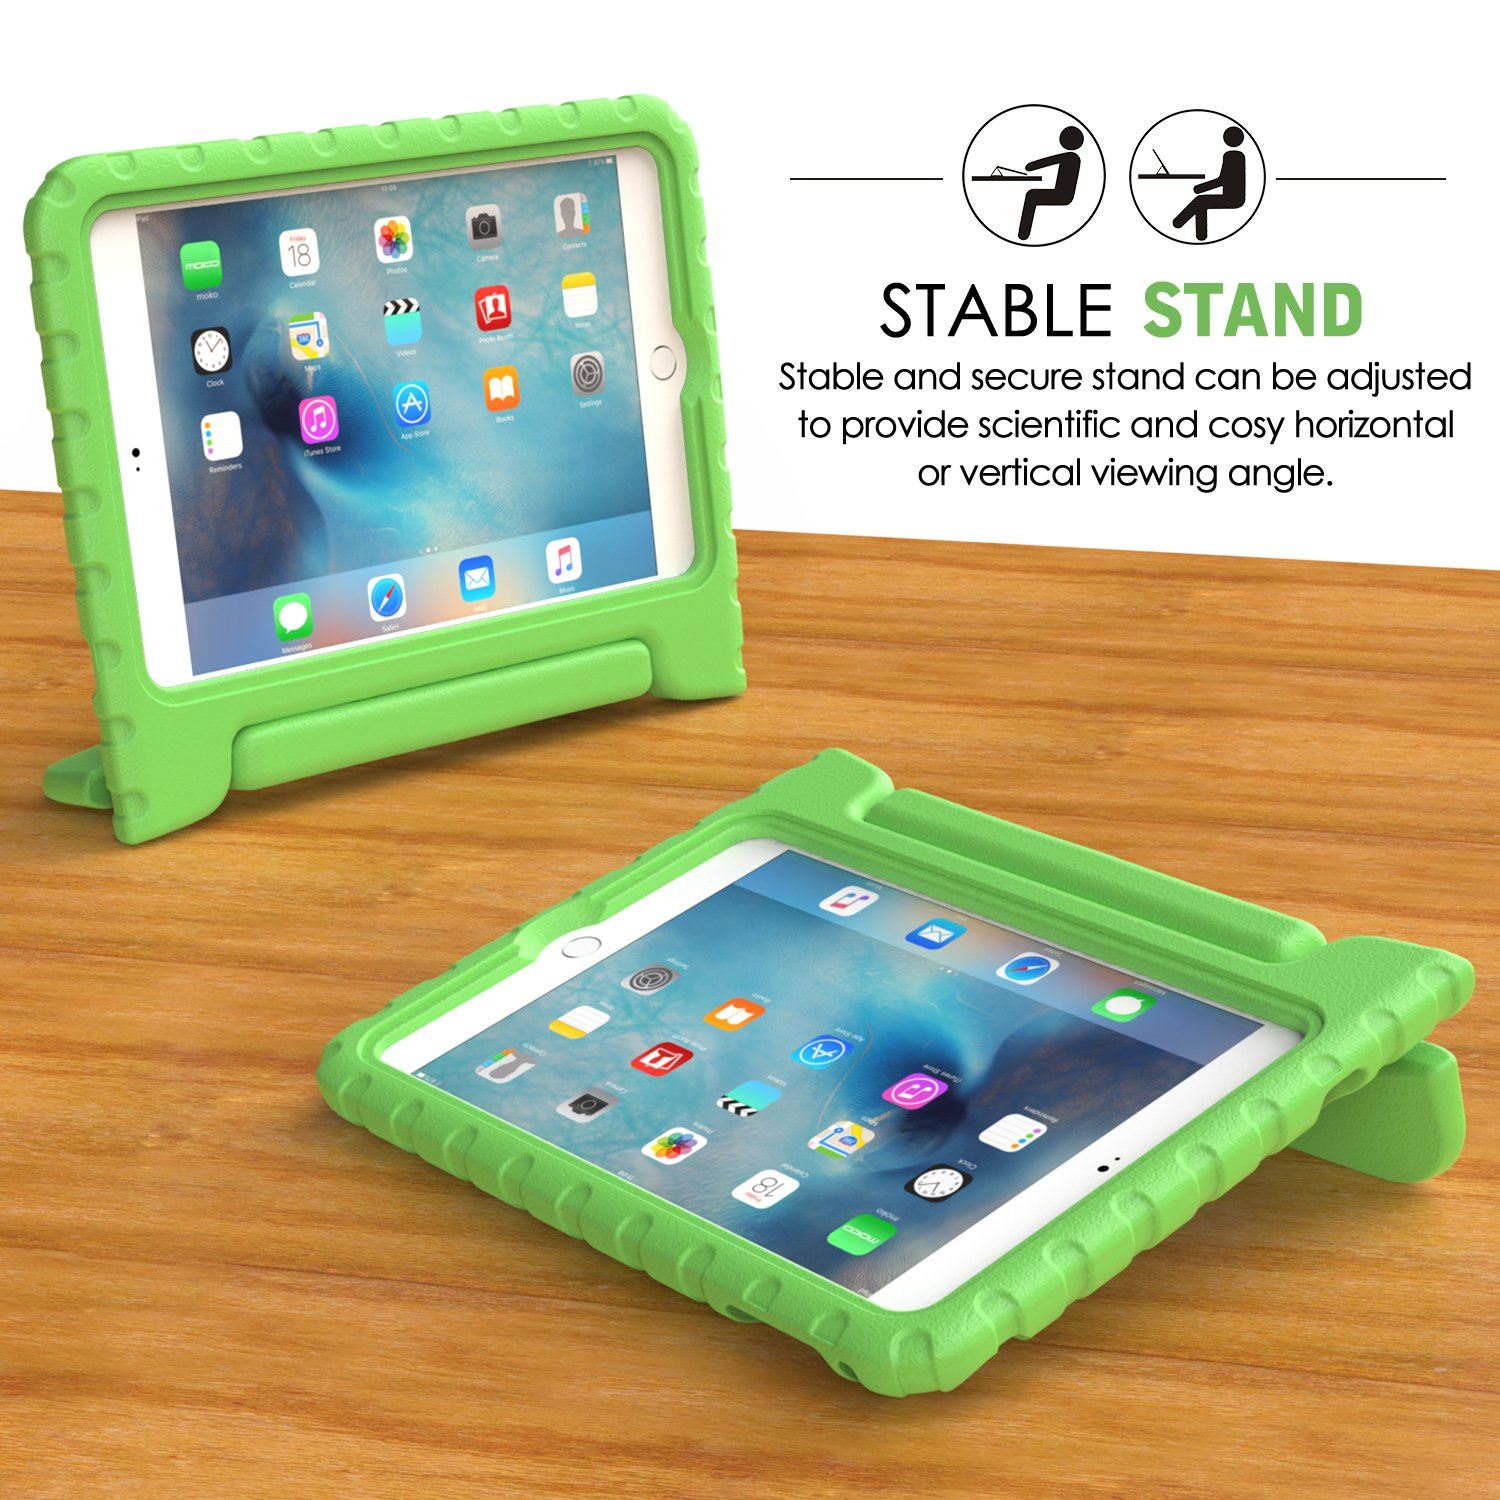 Kid Proof iPad mini 4 Case with handle that doubles as a stand